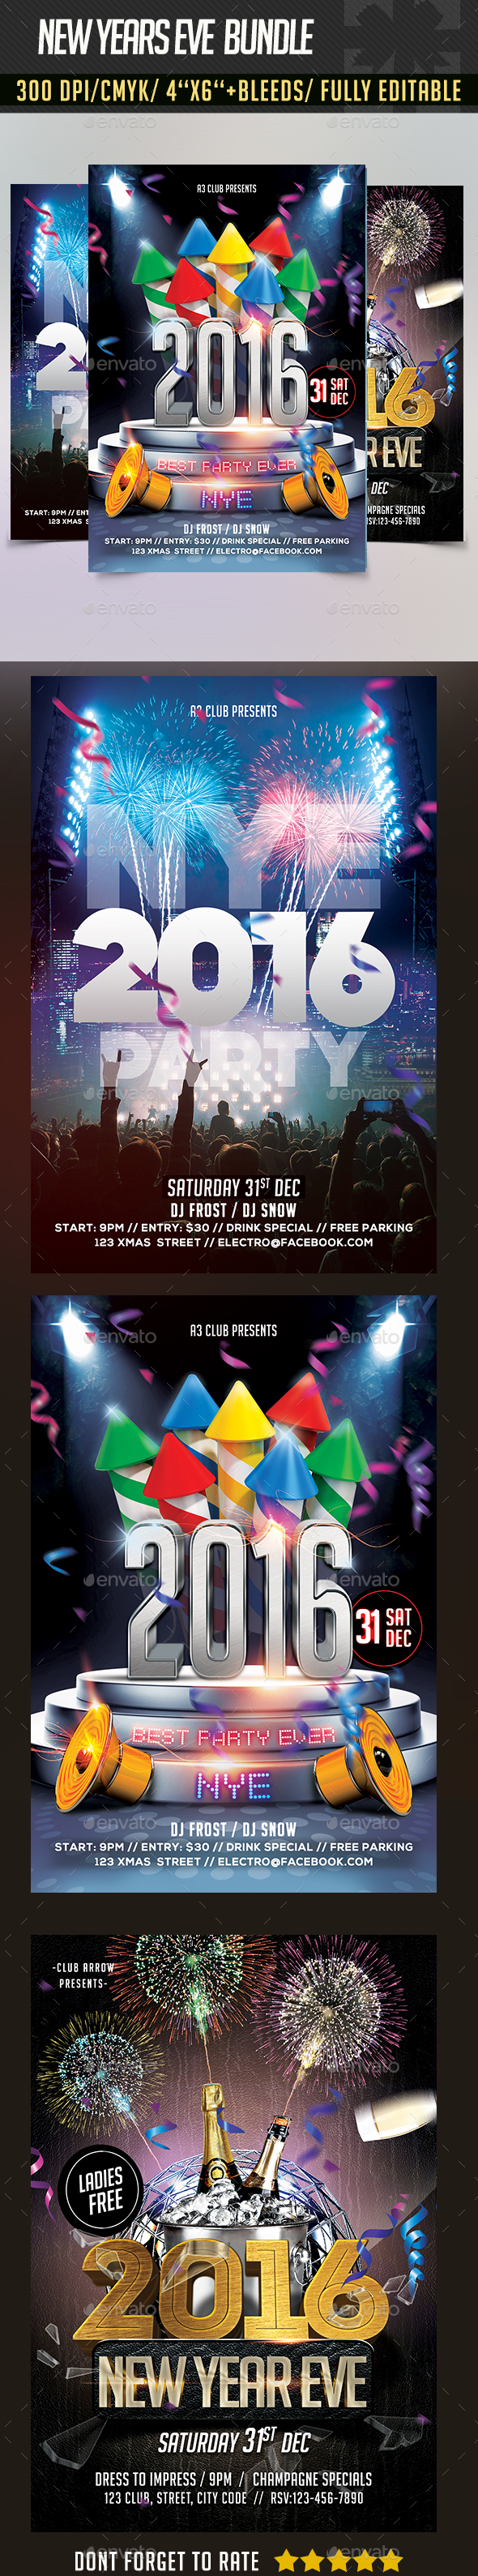 New Years Eve Flyer Bundle - Clubs & Parties Events